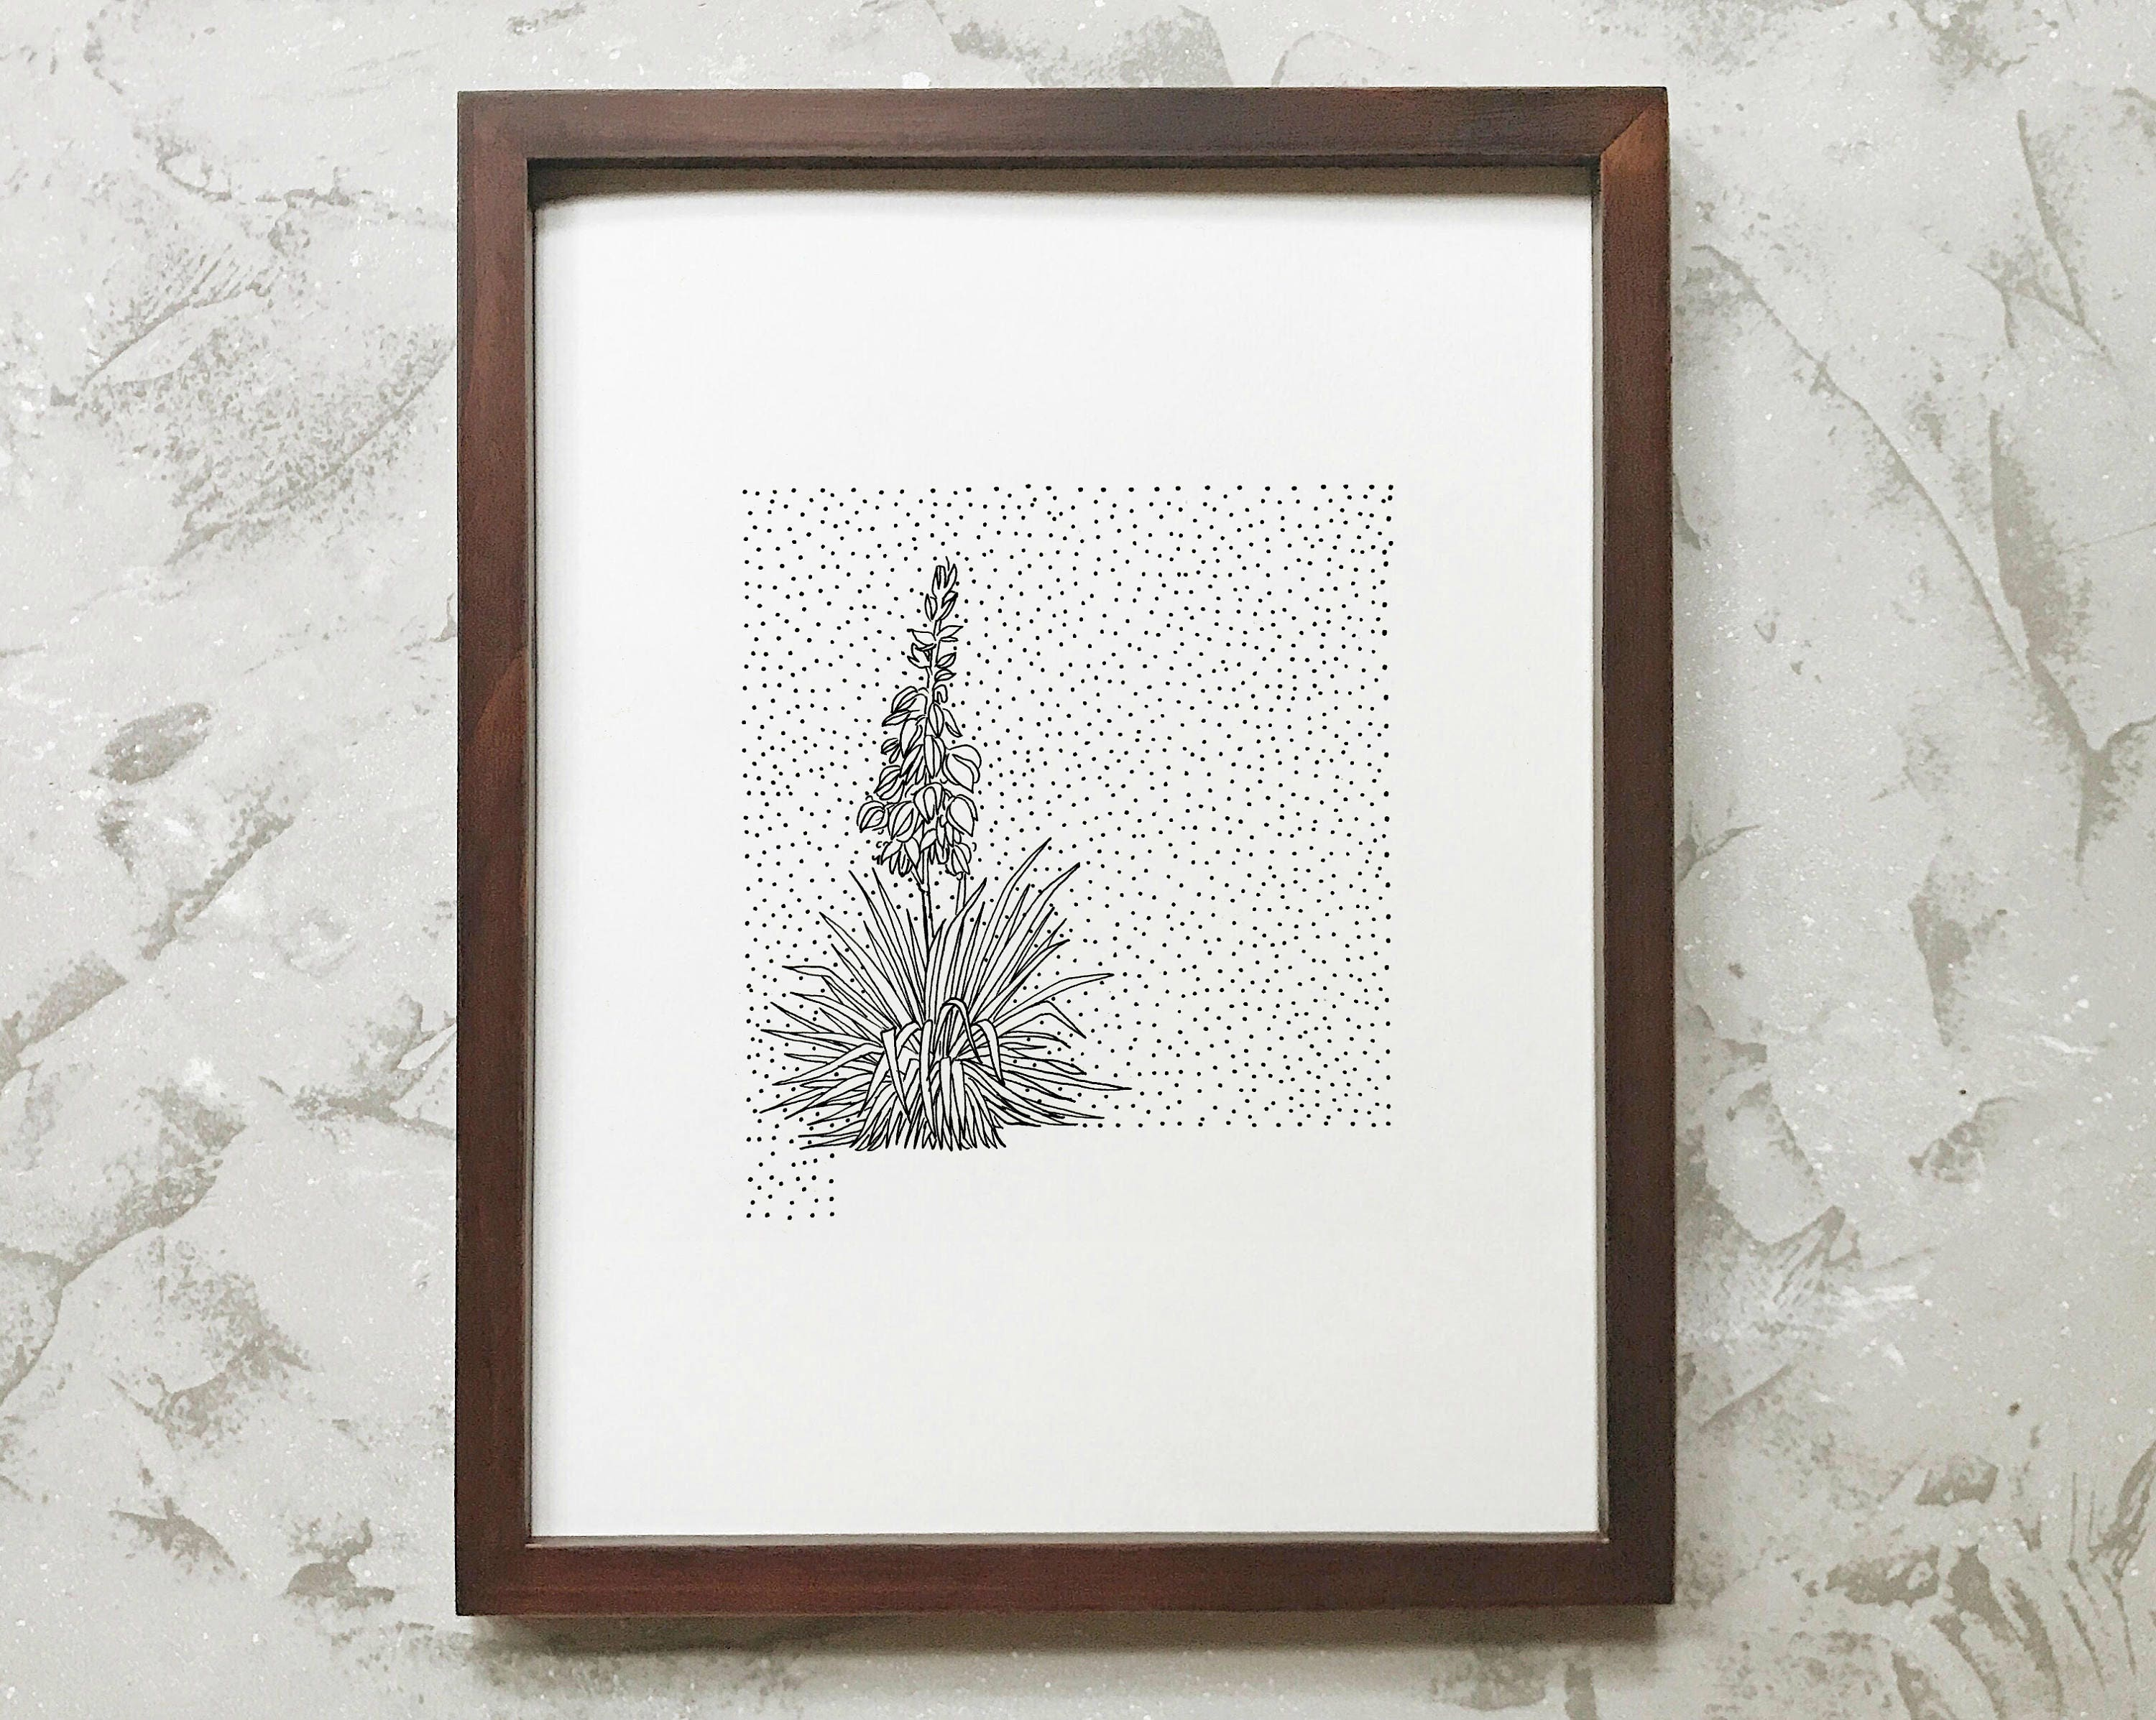 New Mexico Yucca State Flower Drawing Giclee Print